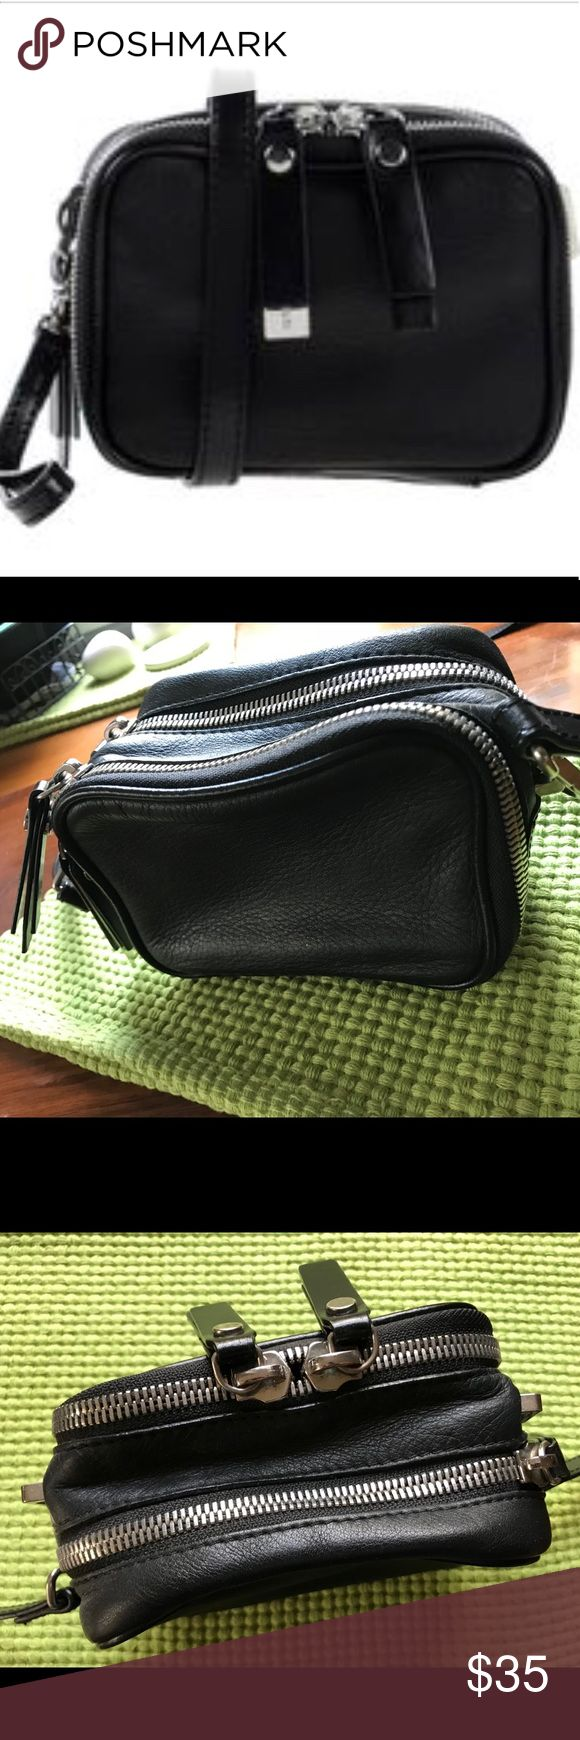 DIESEL BLACK GOLD CROSSBODY LEATHER HANDBAG!!! This lil gem is in GREAT condition! Detachable straps. Zip closure. Two separate compartments. This clutch/crossbody is a great piece for any occasion! A MUST HAVE! Diesel Black Gold Bags Crossbody Bags